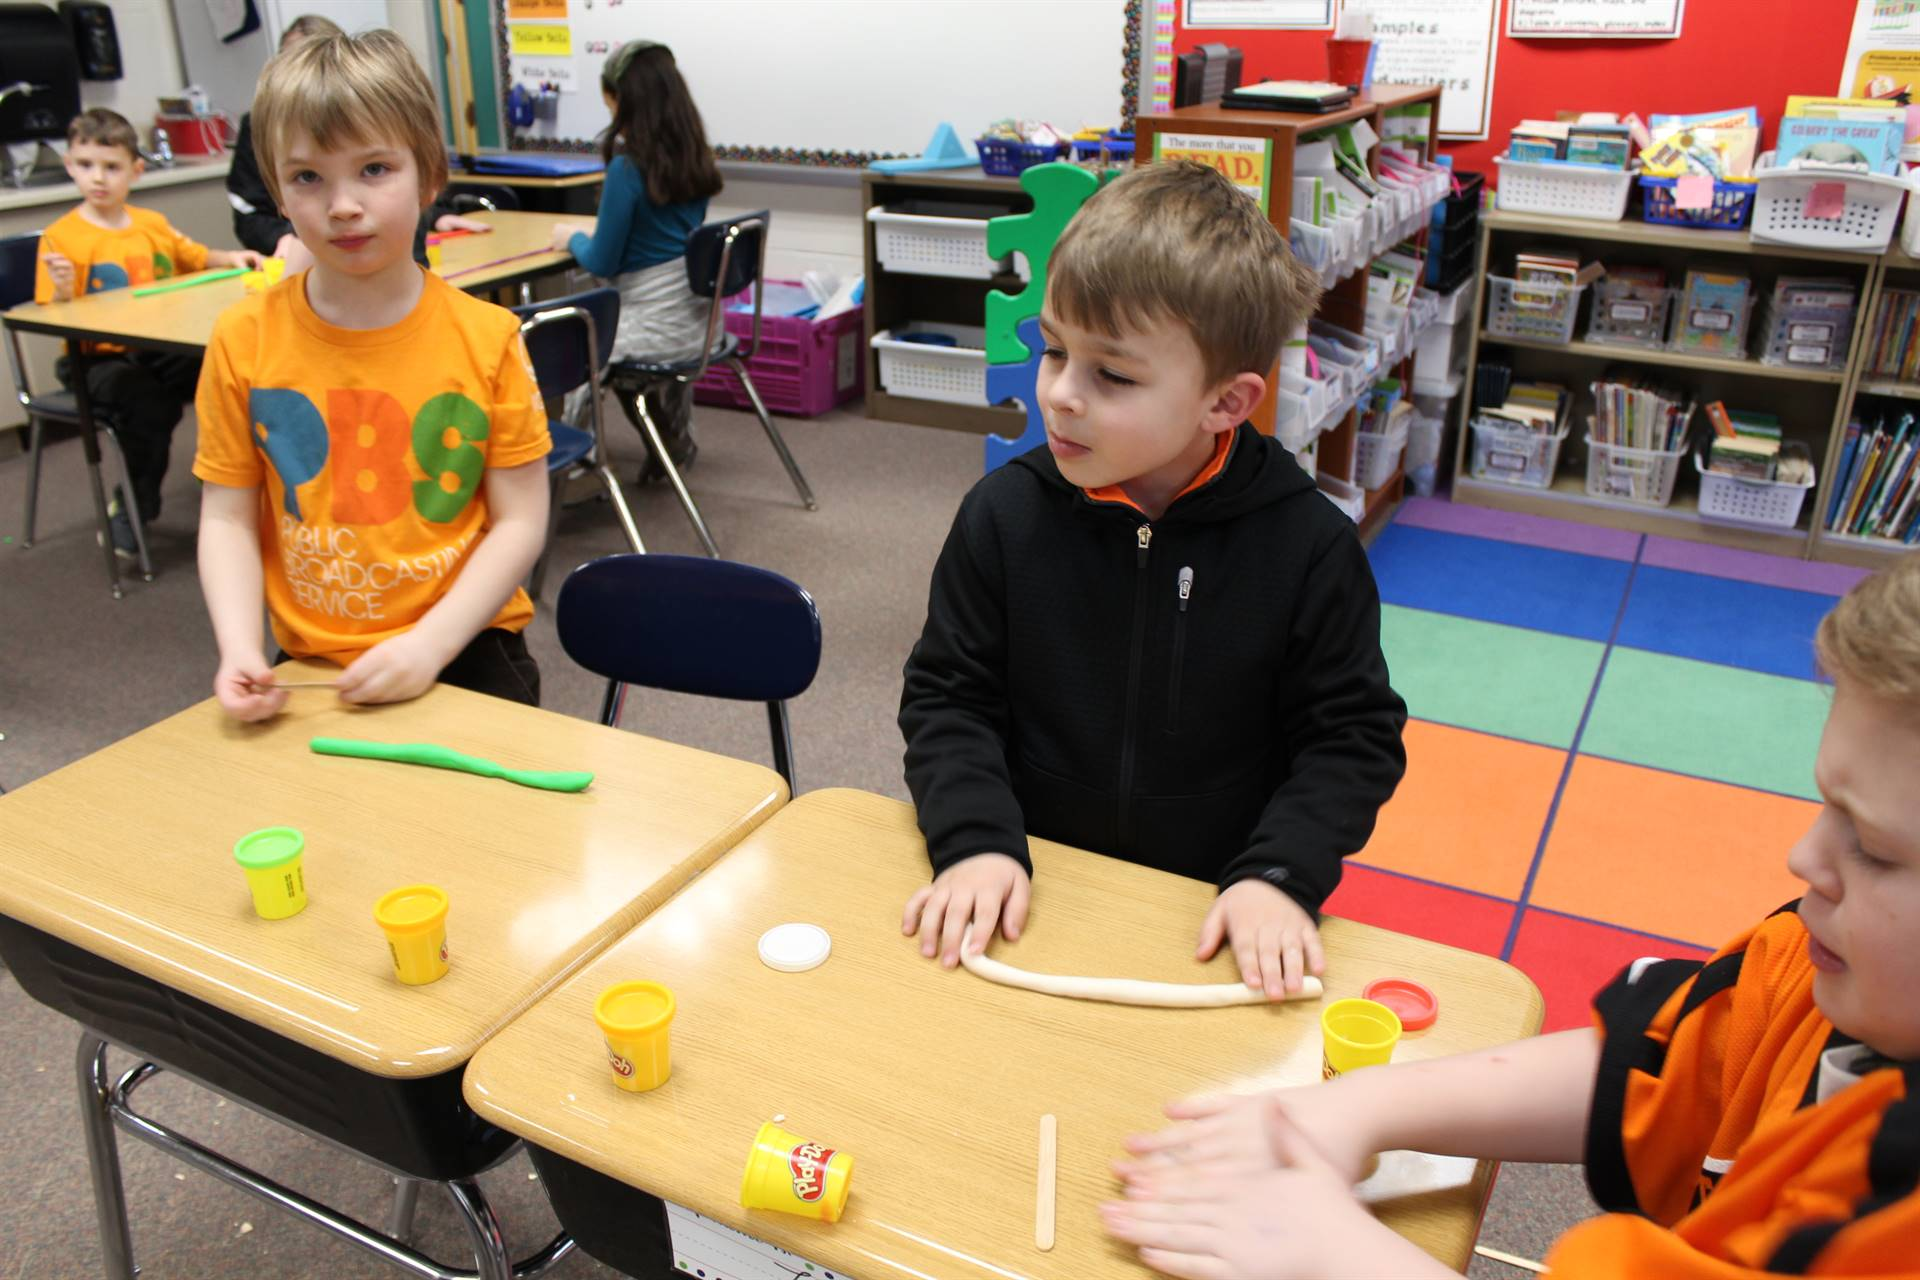 Students using Play Dough